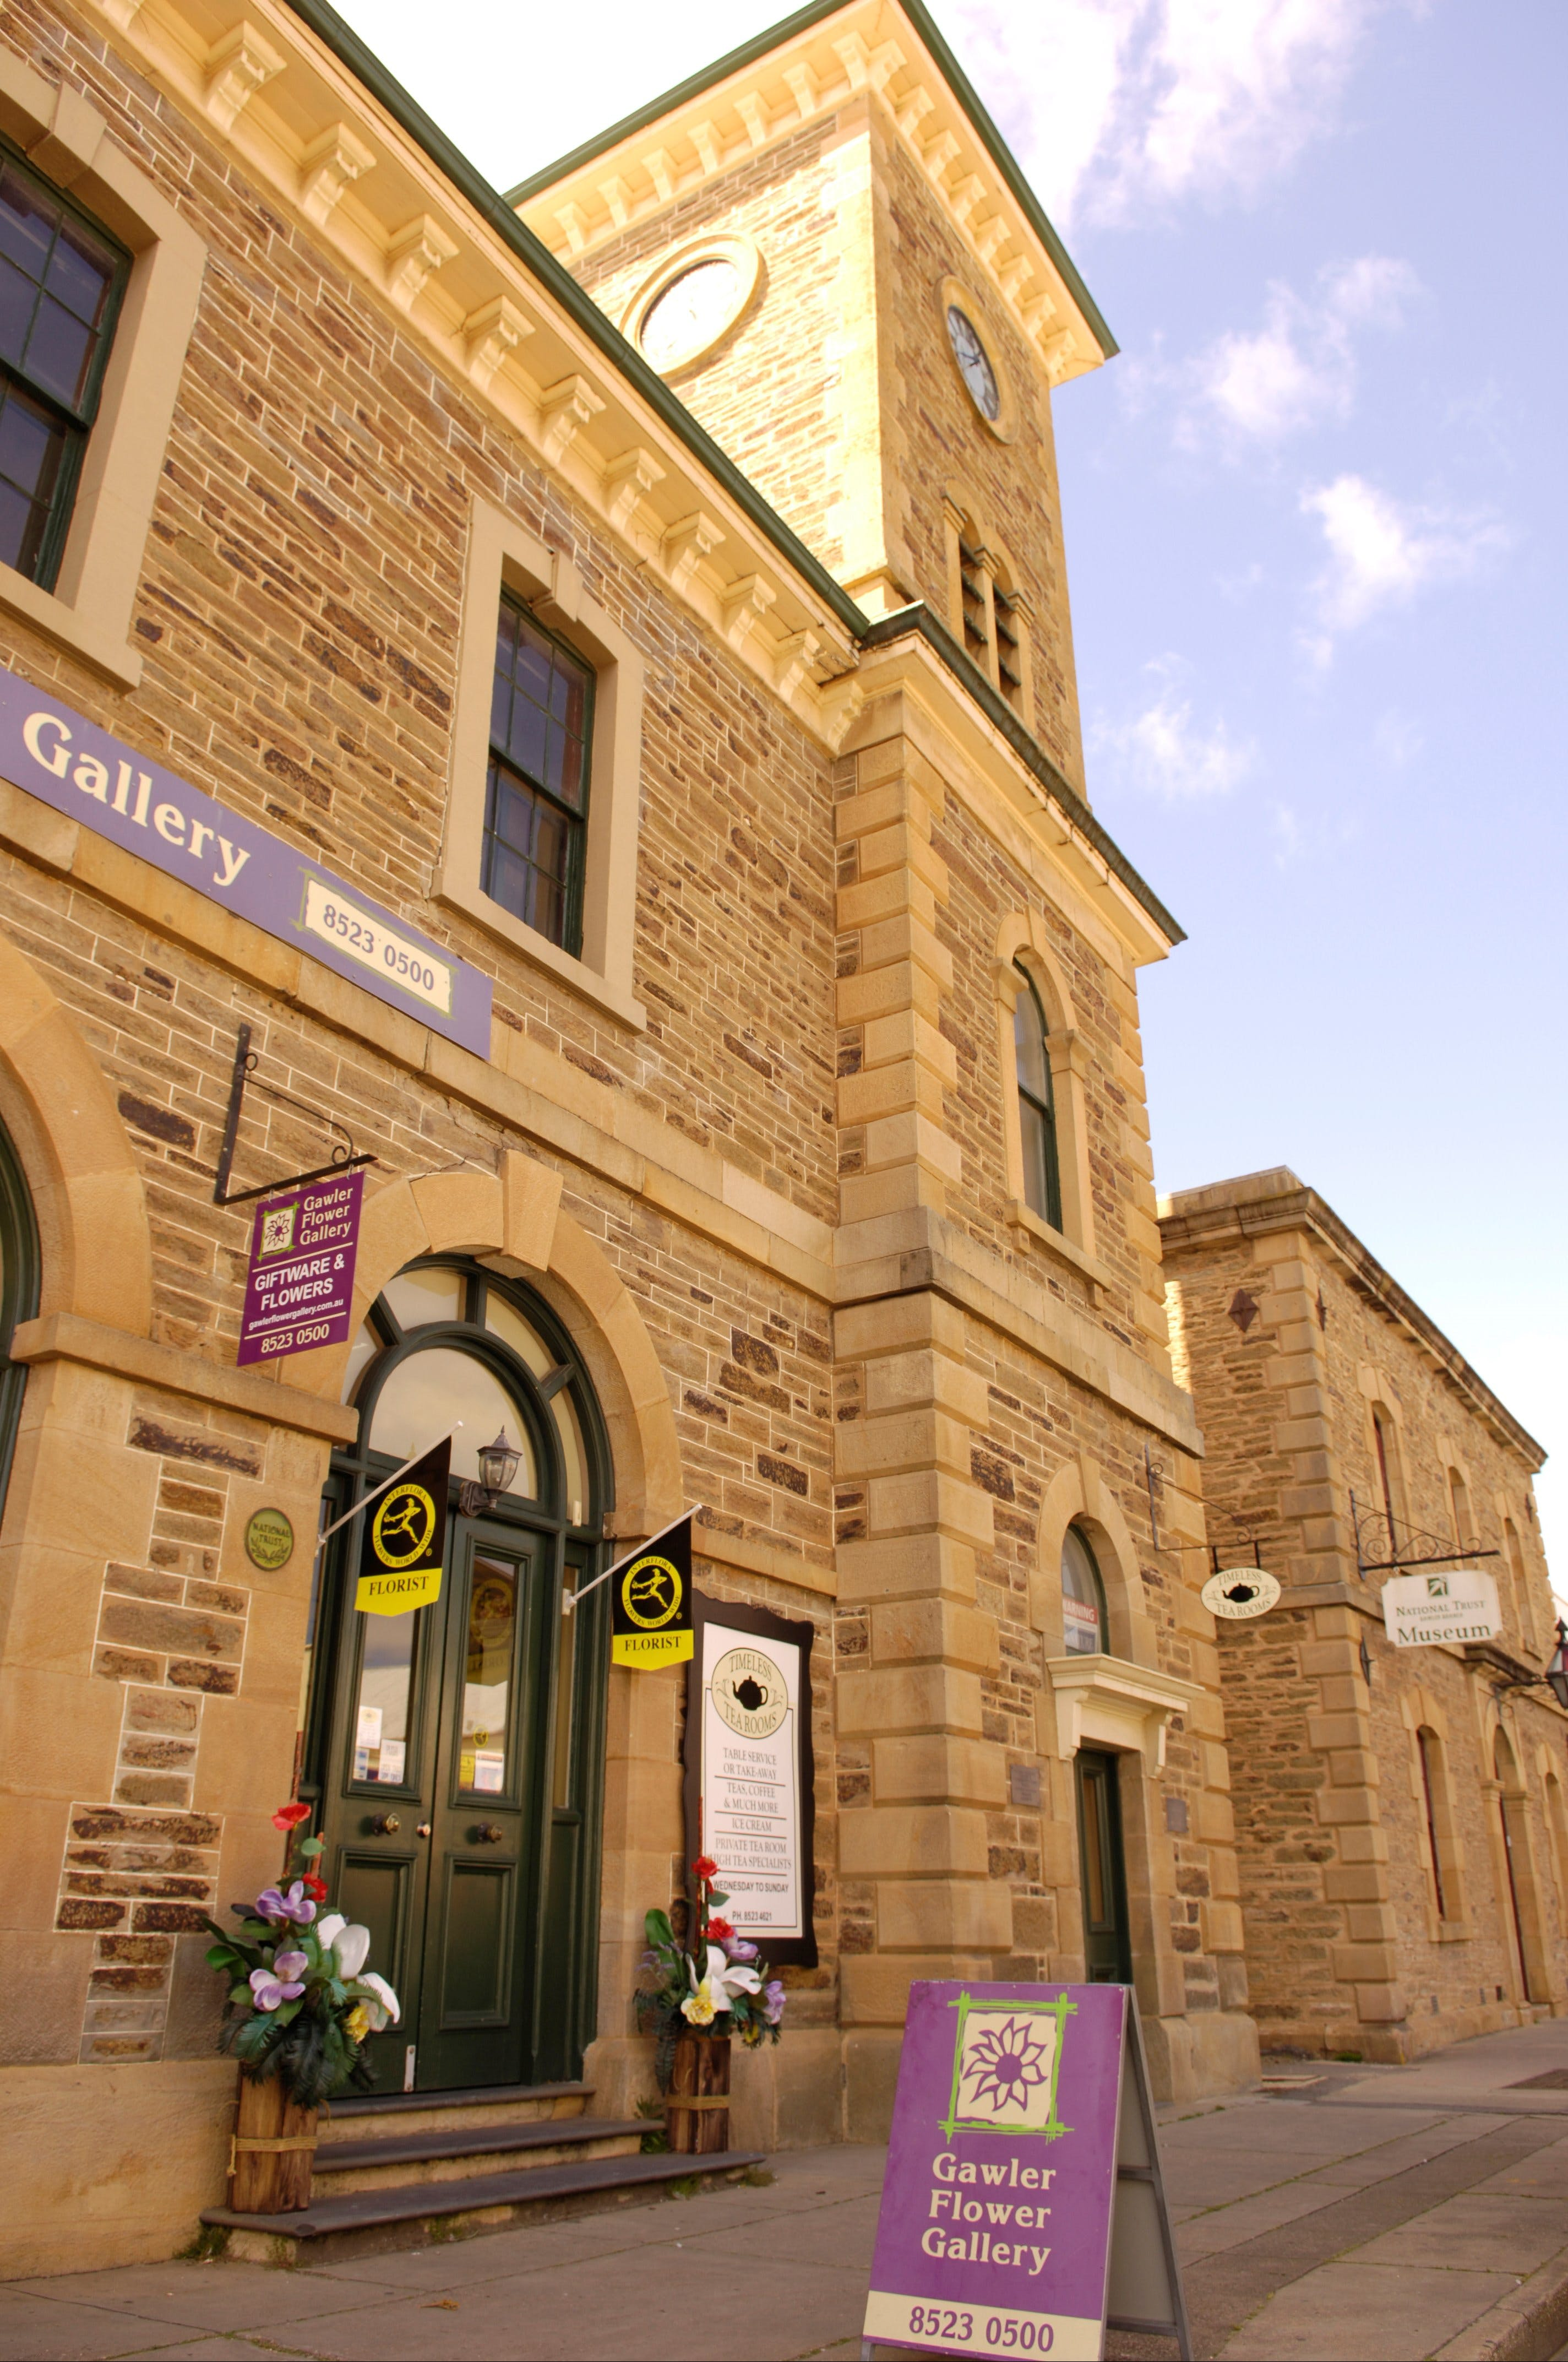 Gawler Historic Main Street Walking Tour - Great Ocean Road Tourism